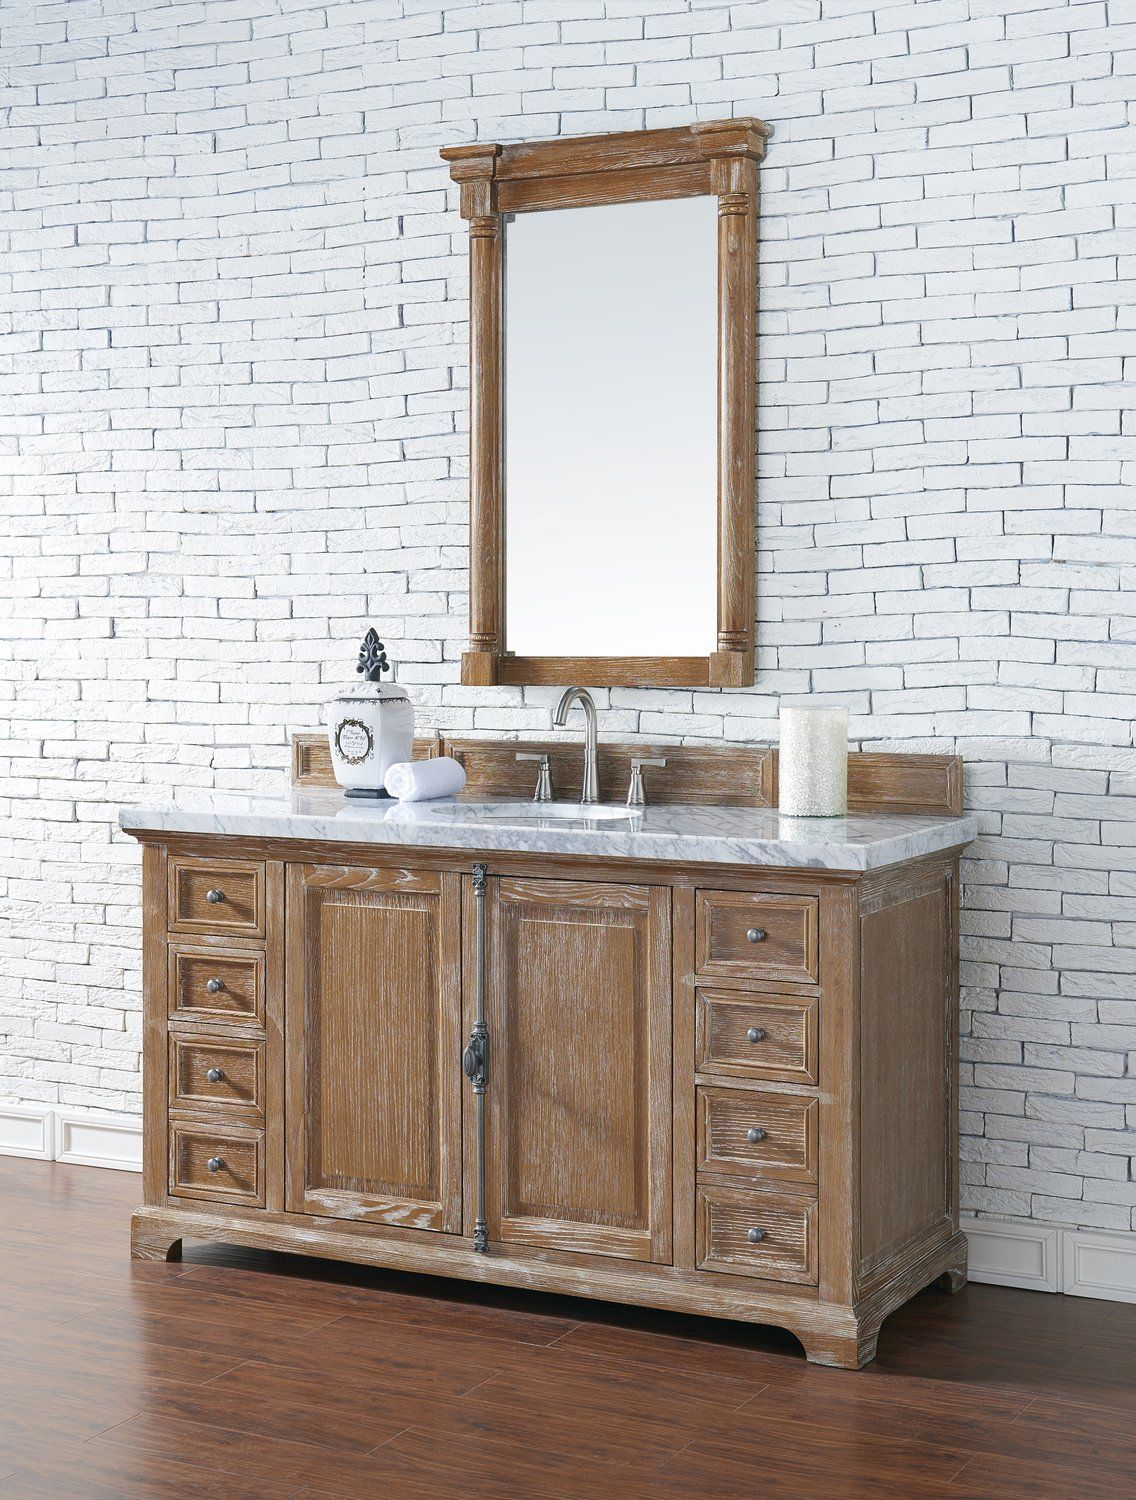 14 Outstanding Driftwood Bathroom Vanity Design | Bathroom Vanities ...